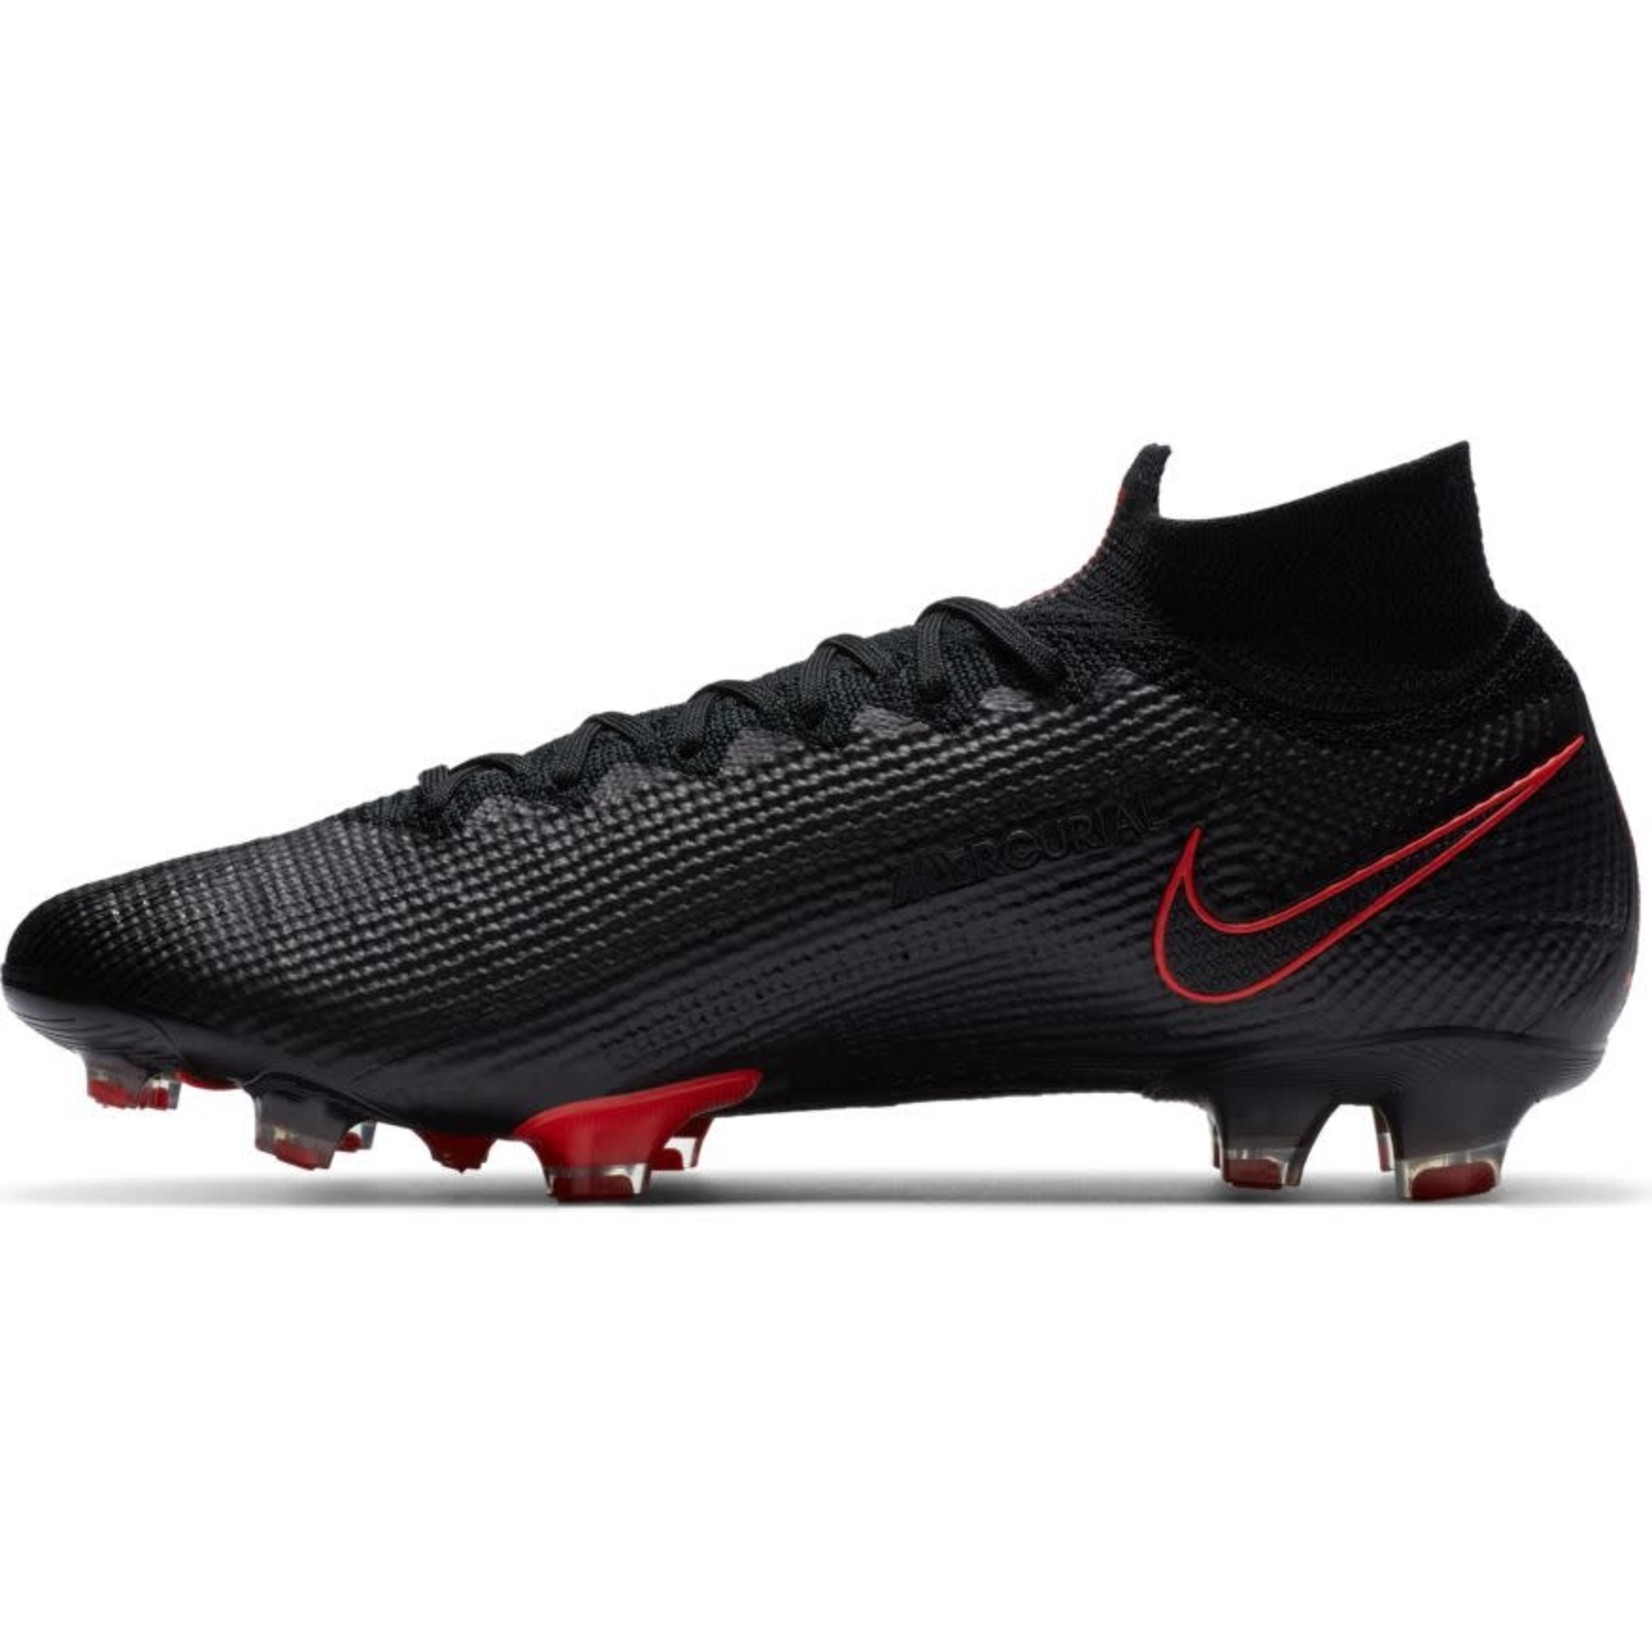 NIKE MERCURIAL SUPERFLY 7 ELITE FG (BLACK/RED)